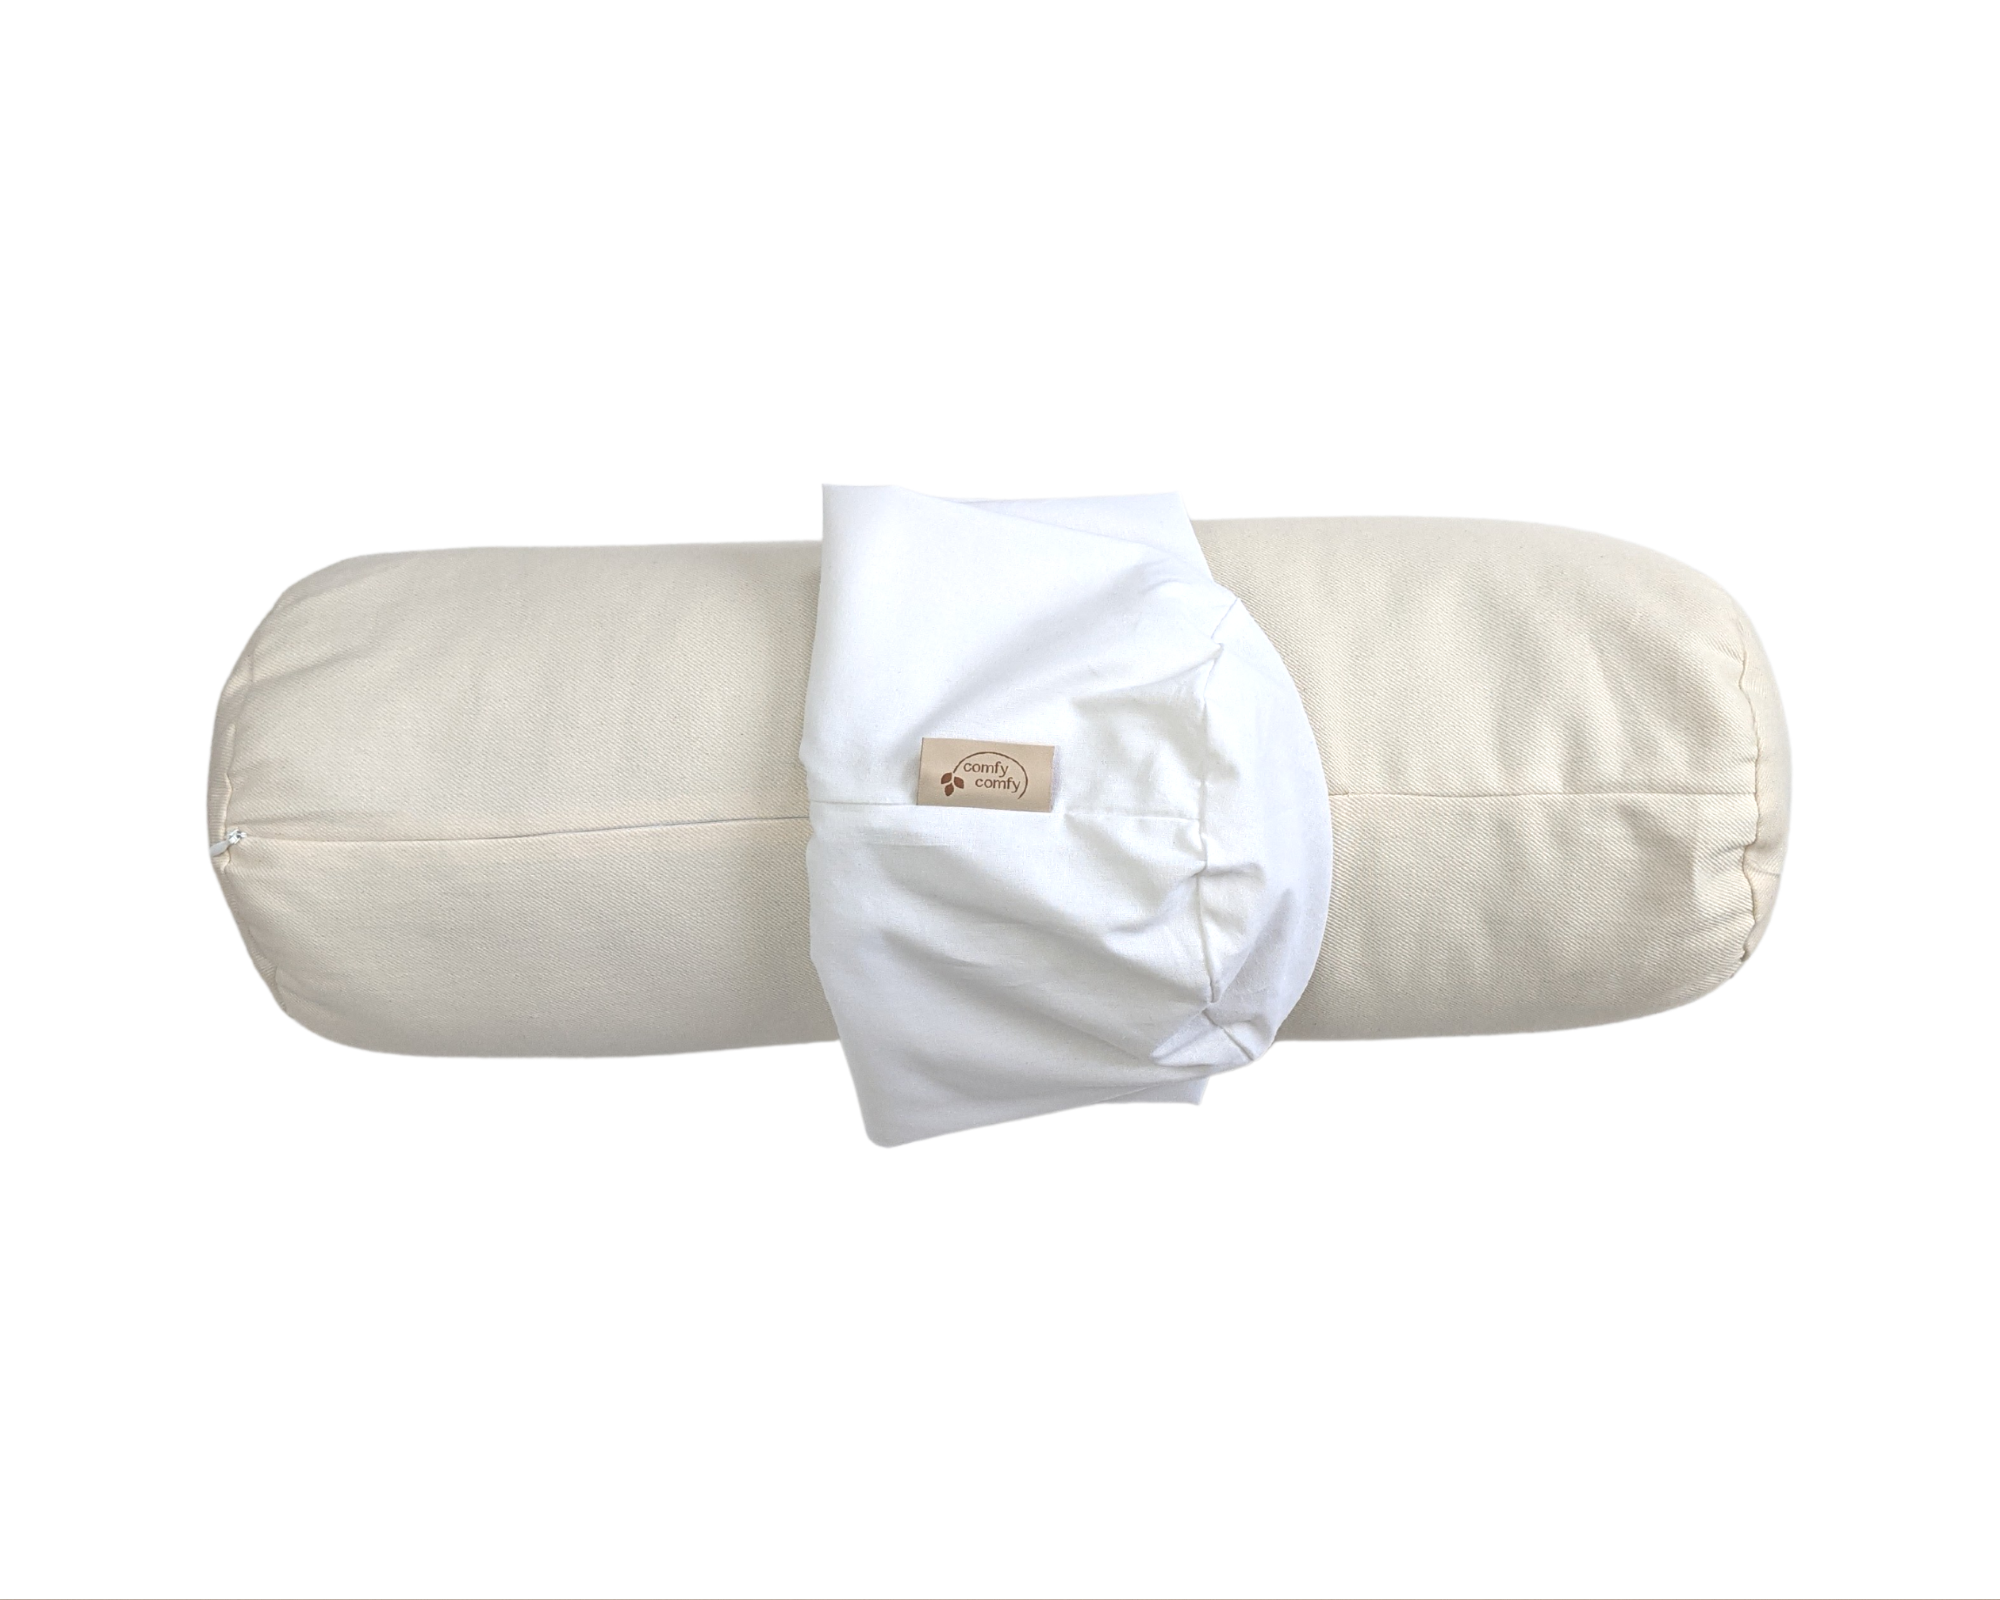 Body Support Pillow + Pillowcase - Organic Buckwheat Hull Body Pillow